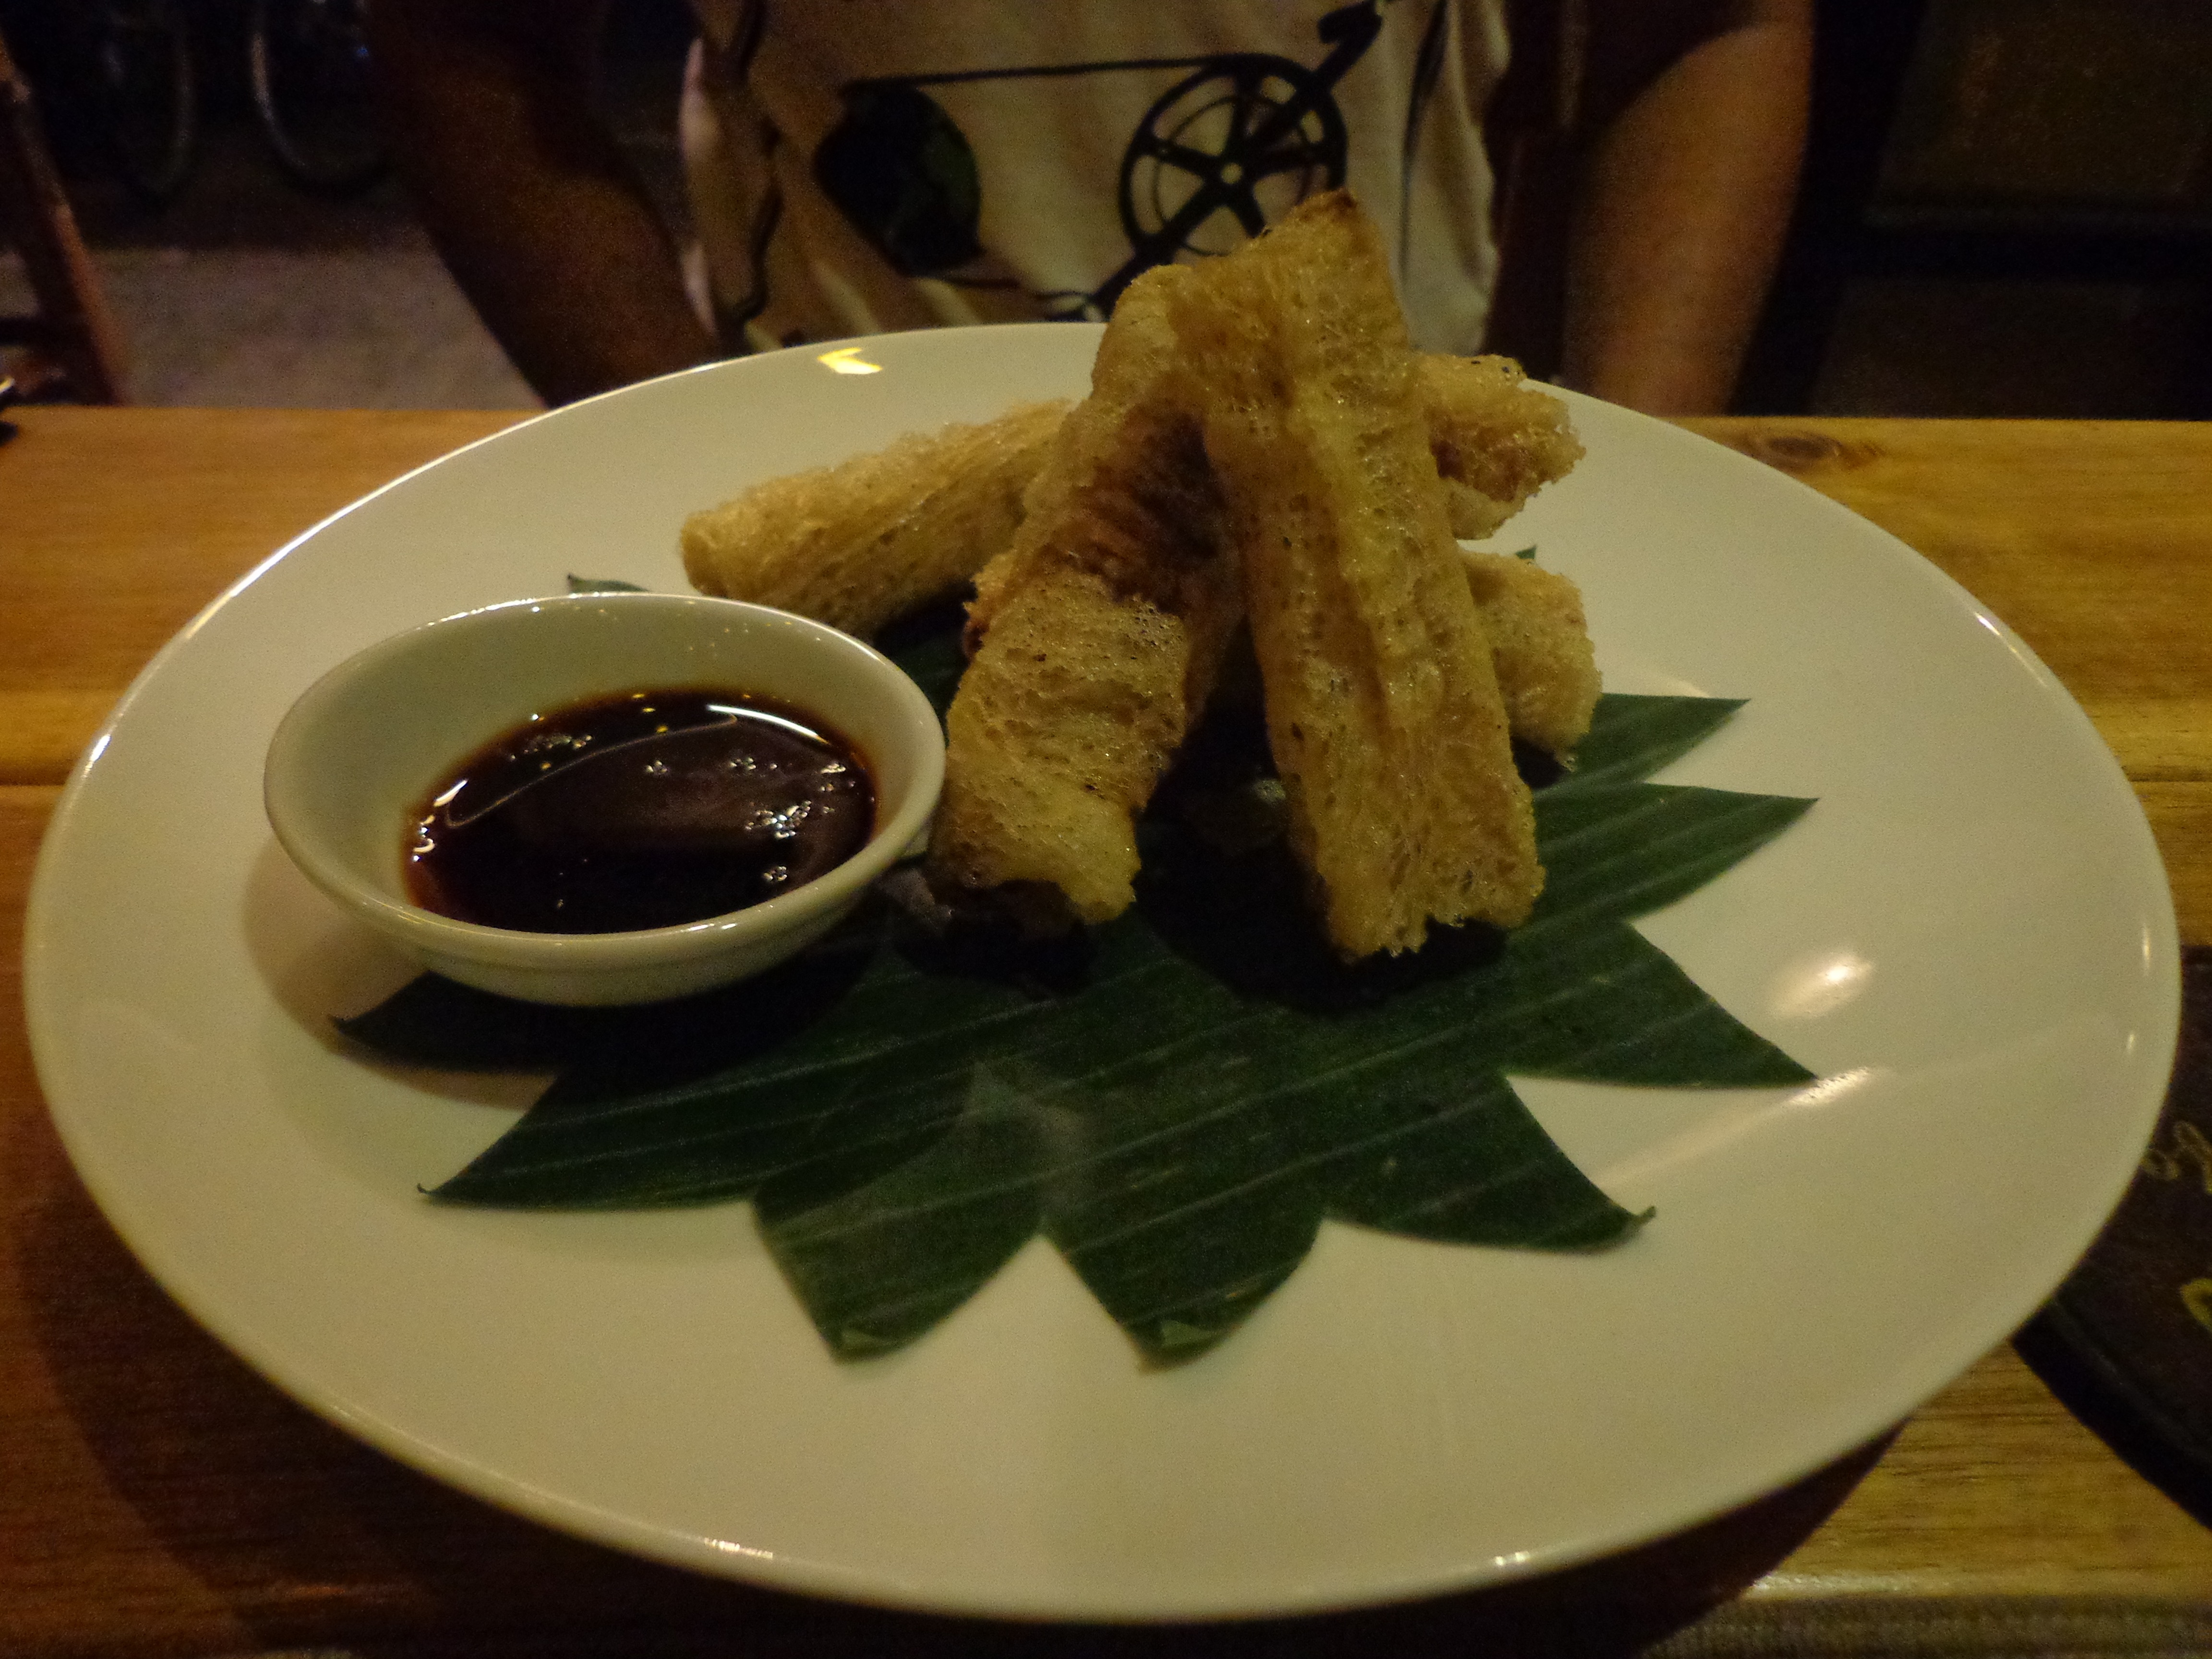 Nandy liked the duck spring rolls on the platter so much that he ordered an entire portion of it.